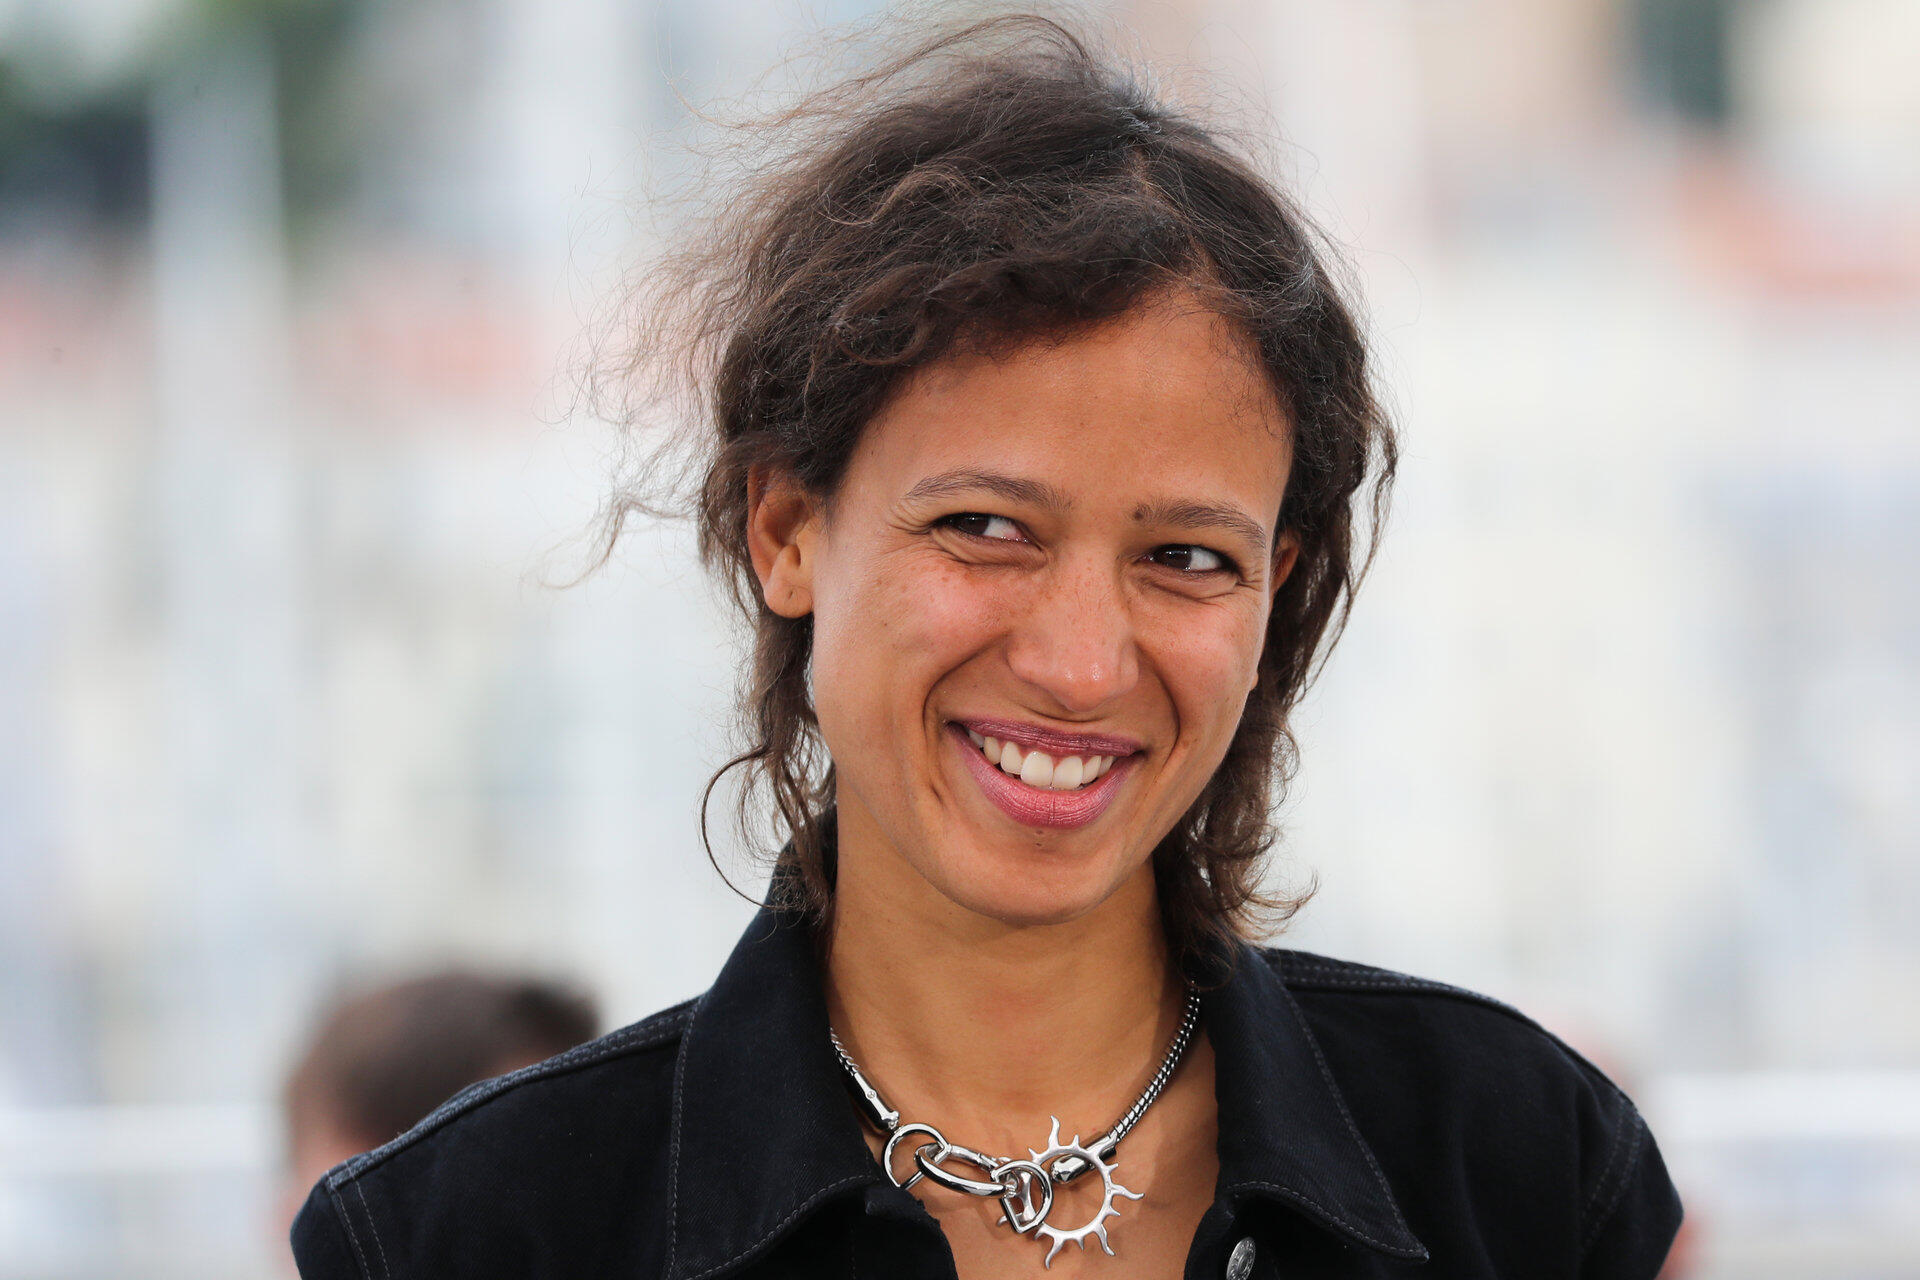 Franco-Senegalese director Mati Diop is one of the nine people on the 2021 Cannes film festival jury.